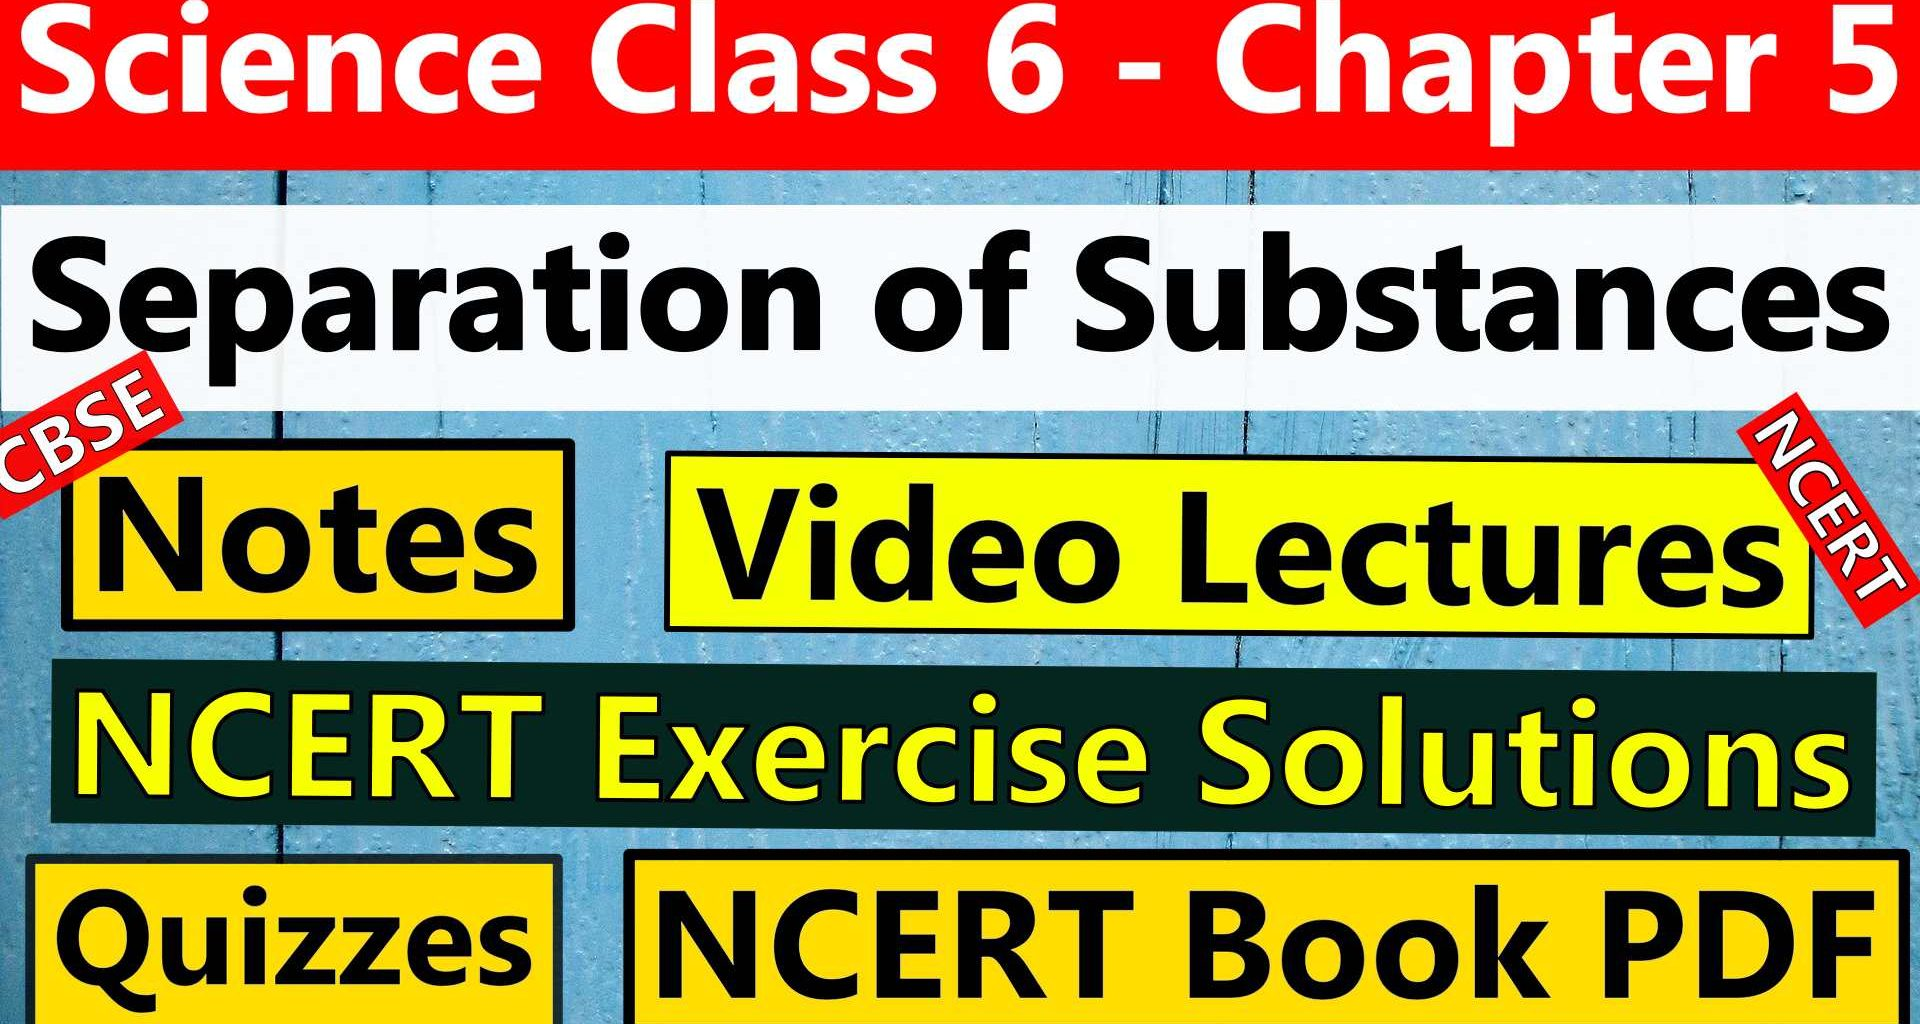 CBSE Science Class 6 - Chapter 5 -Separation of Substances- Notes, Video Lecture, NCERT Exercise Solution, Quizzes, NCERT Book Chapter 5 PDF Download.